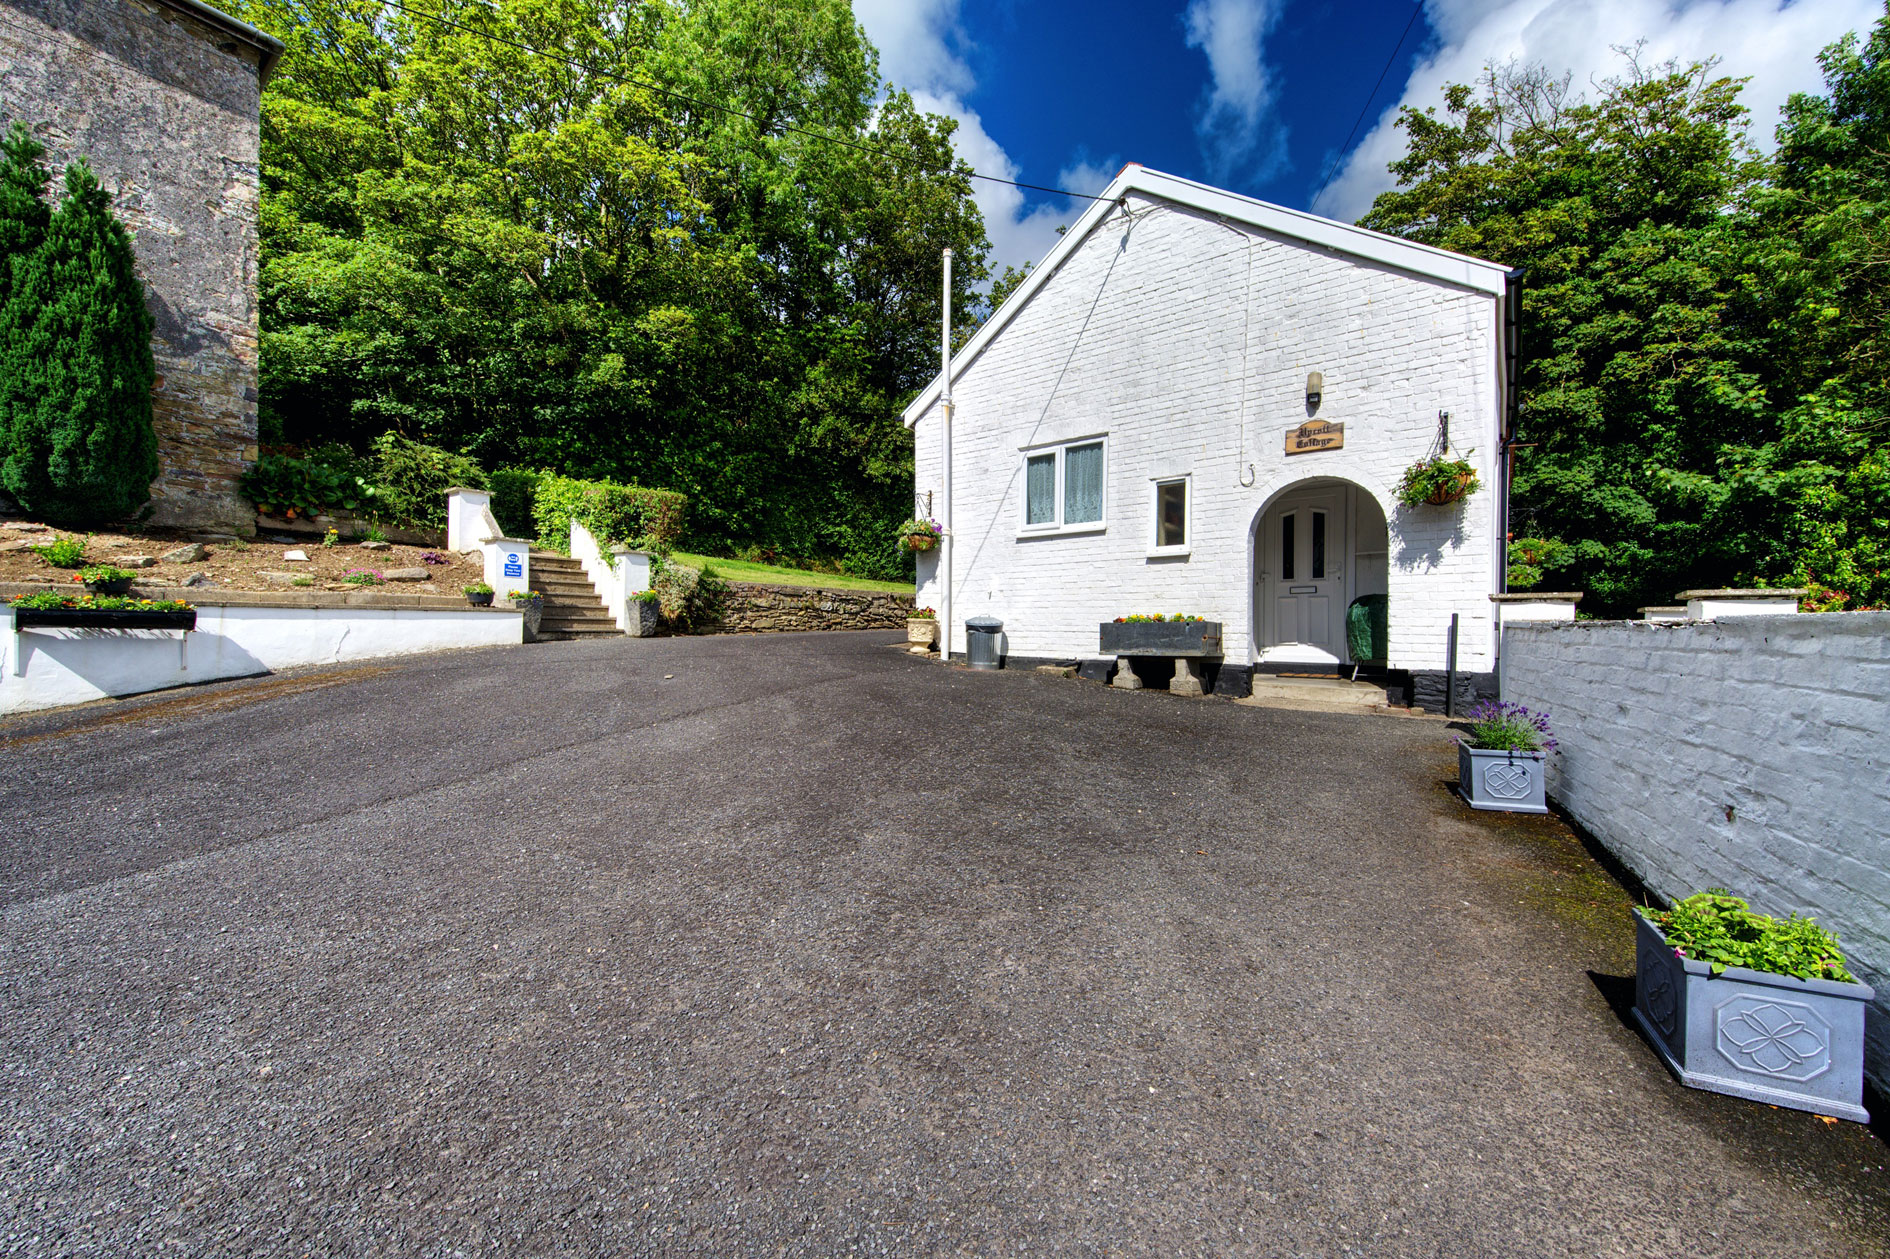 Tarmac Driveways Leading To Small White Building With Trees